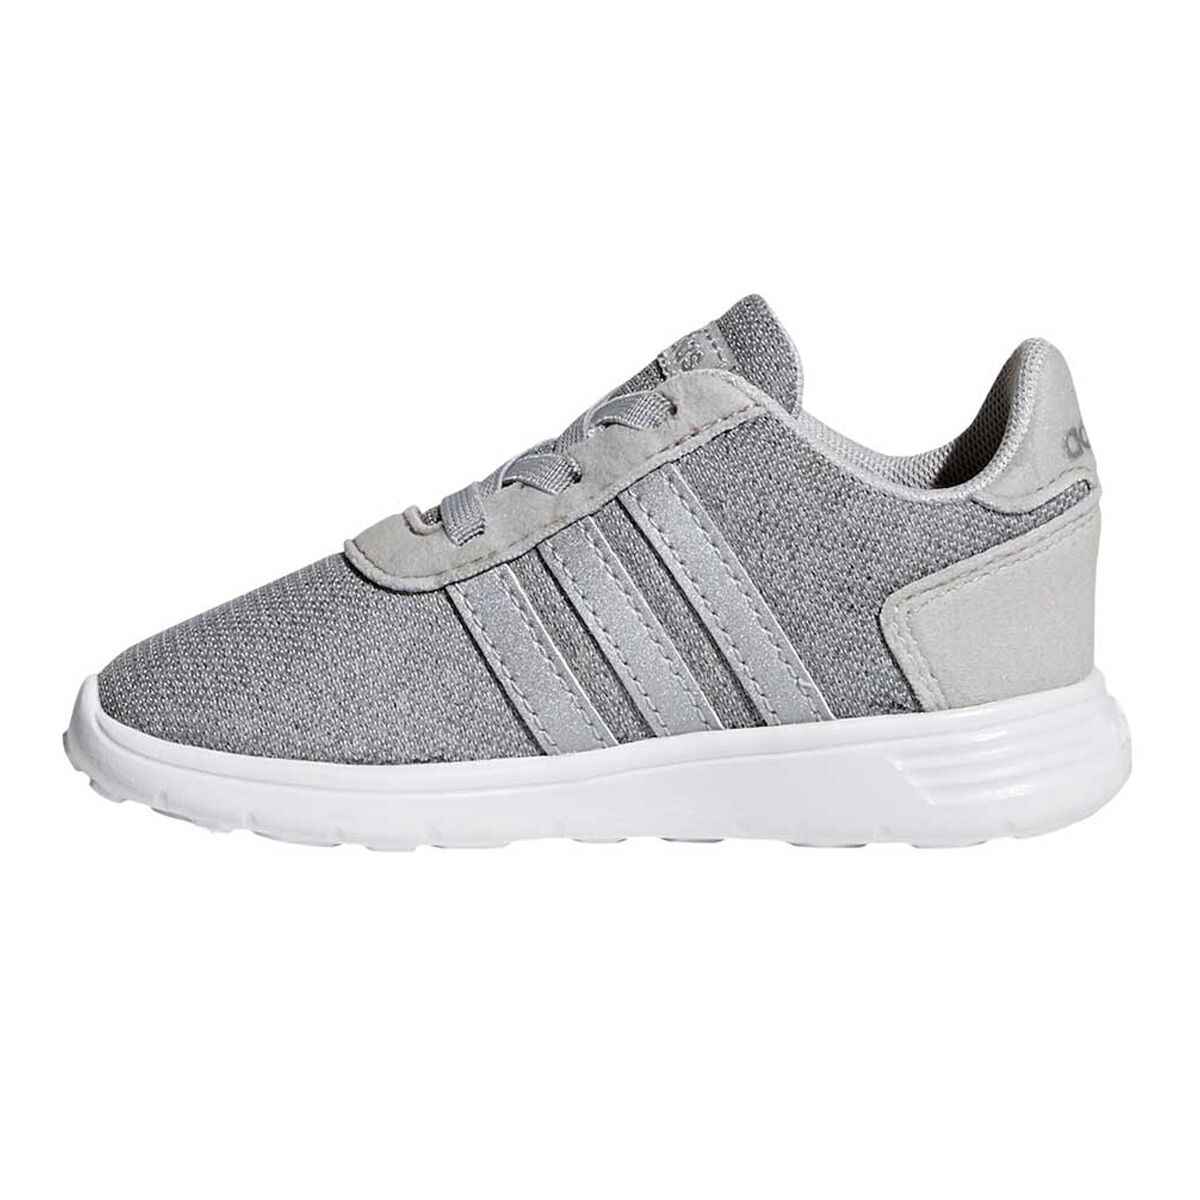 Adidas Stylish Silver Sports Shoes with Lace up Closure